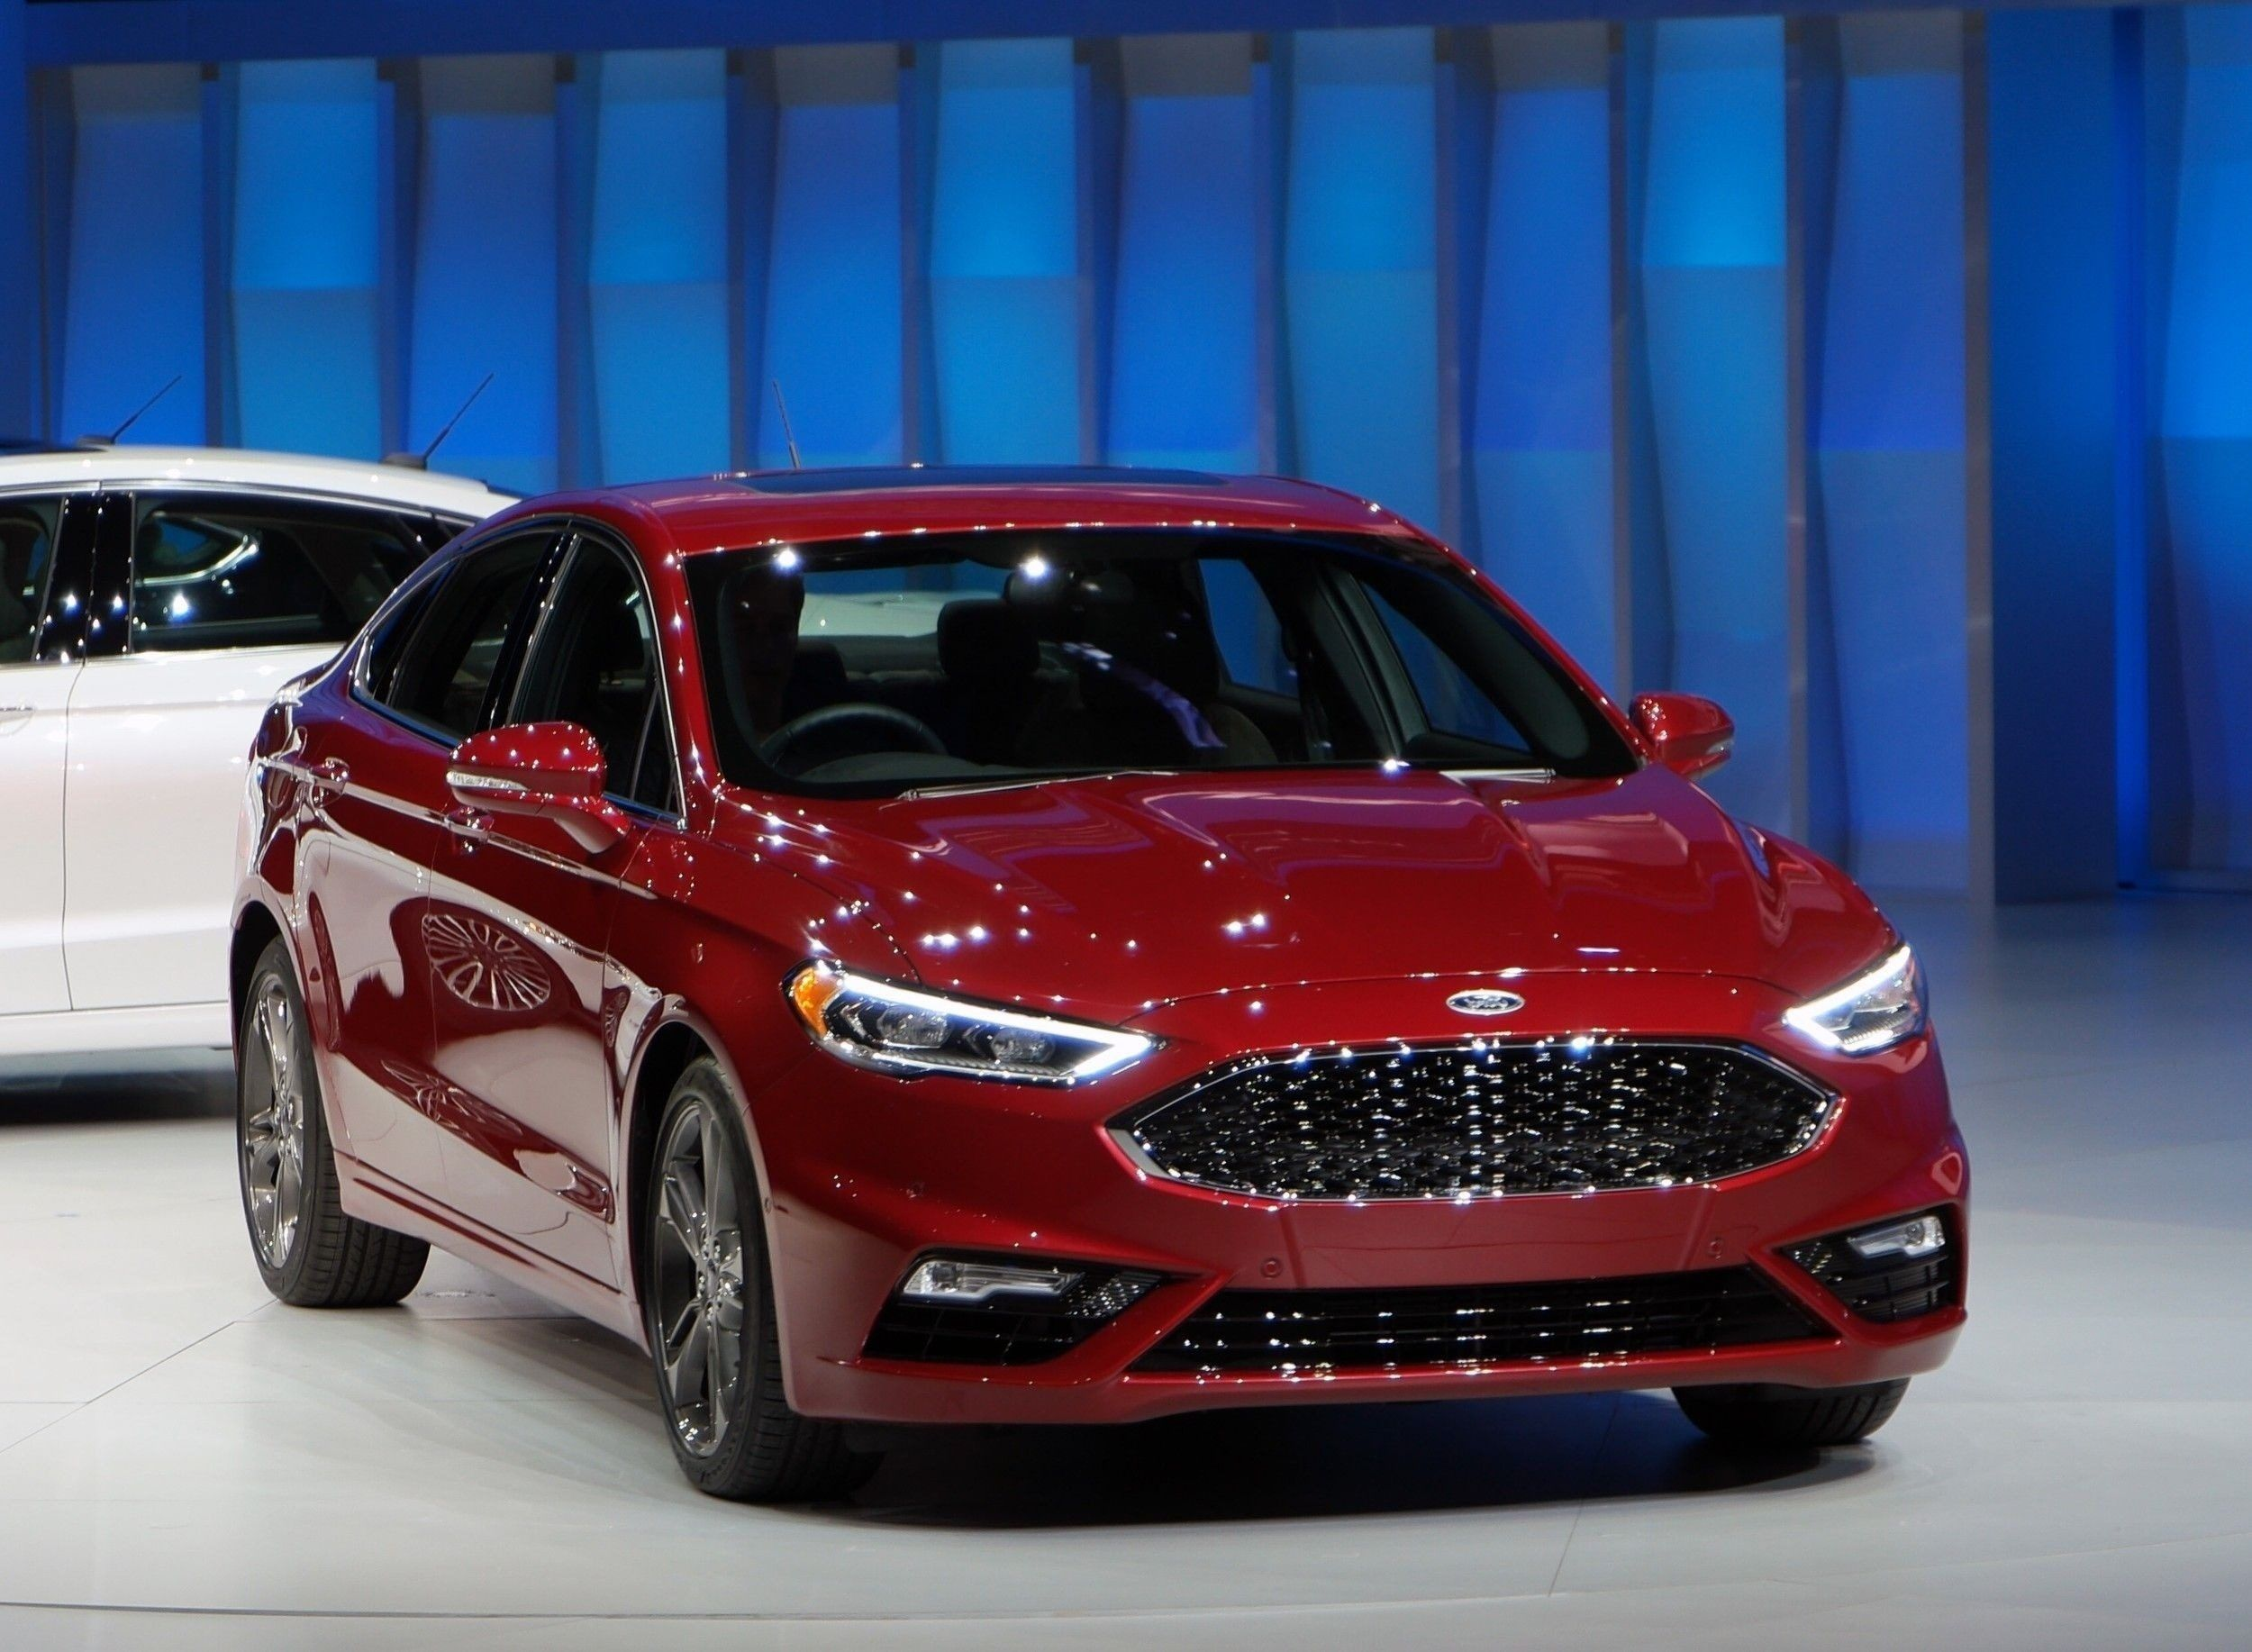 2019 Ford Galaxy Release Date Car Gallery Ford Fusion Ford